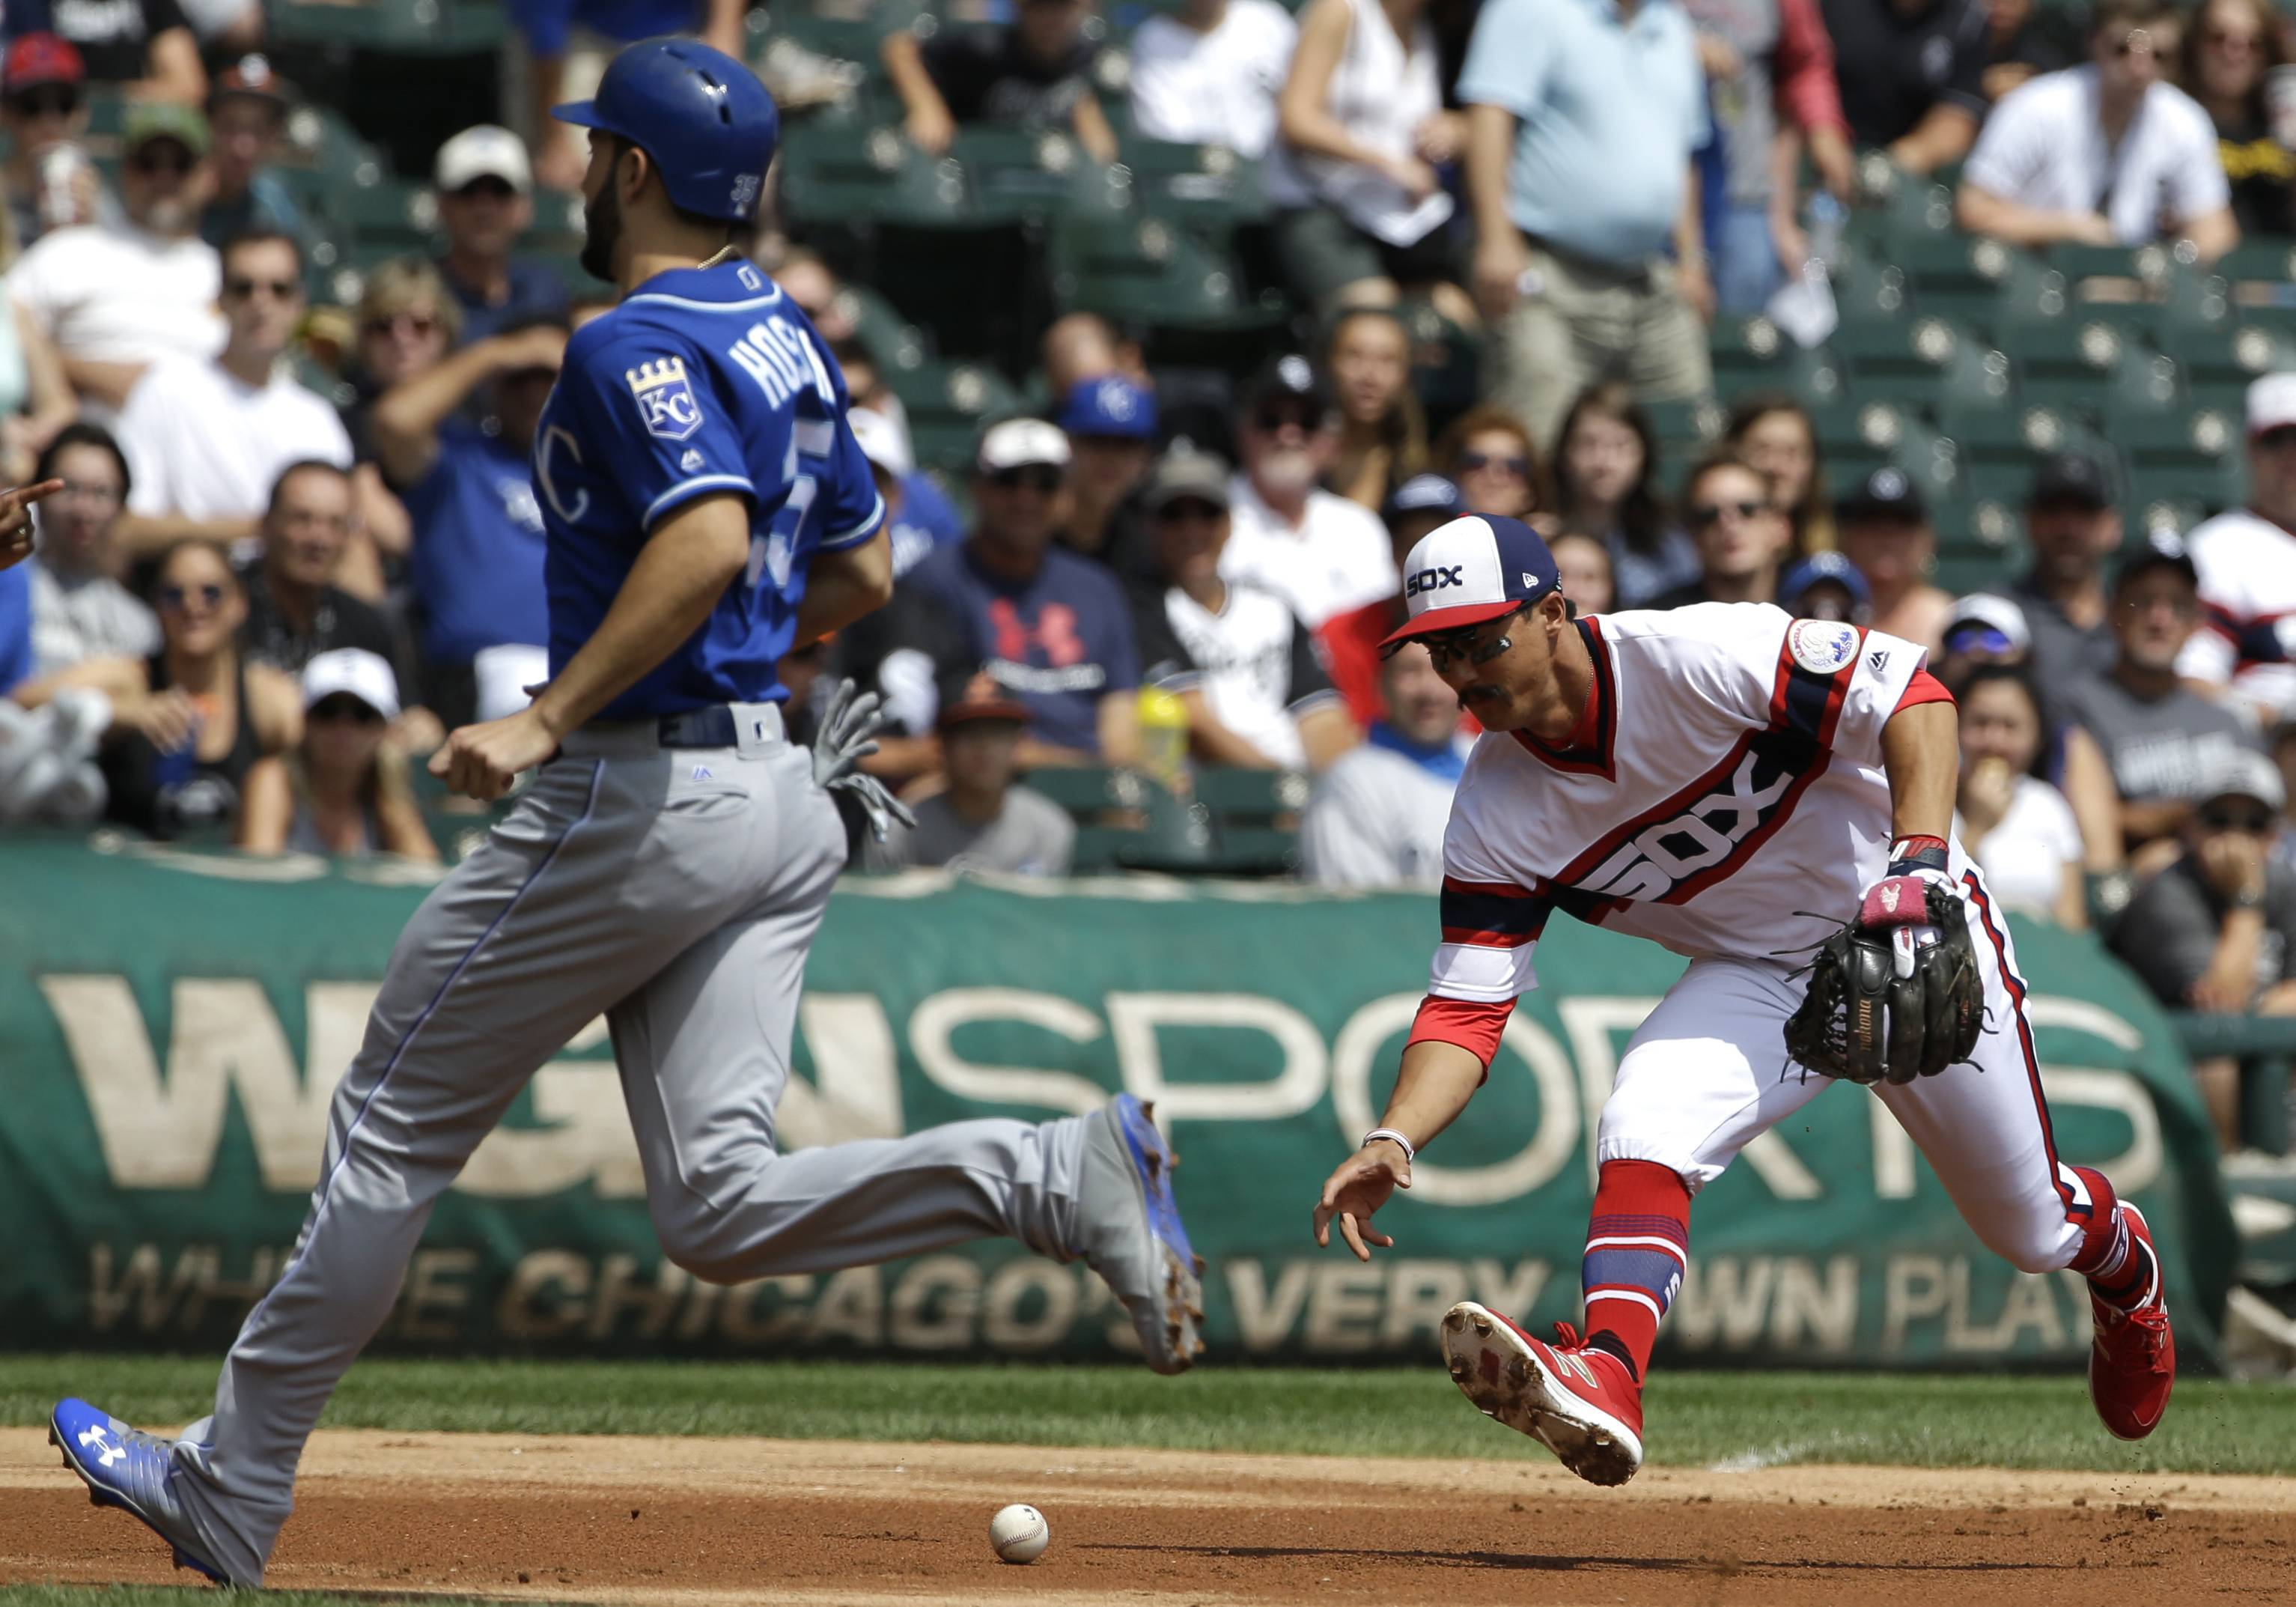 Chicago White Sox third baseman Tyler Saladino, right, makes a fielding error while trying to grab a ball hit by Kansas City Royals' Melky Cabrera as Eric Hosmer runs to third base during the first inning of a baseball game, Sunday, Aug. 13, 2017, in Chicago.